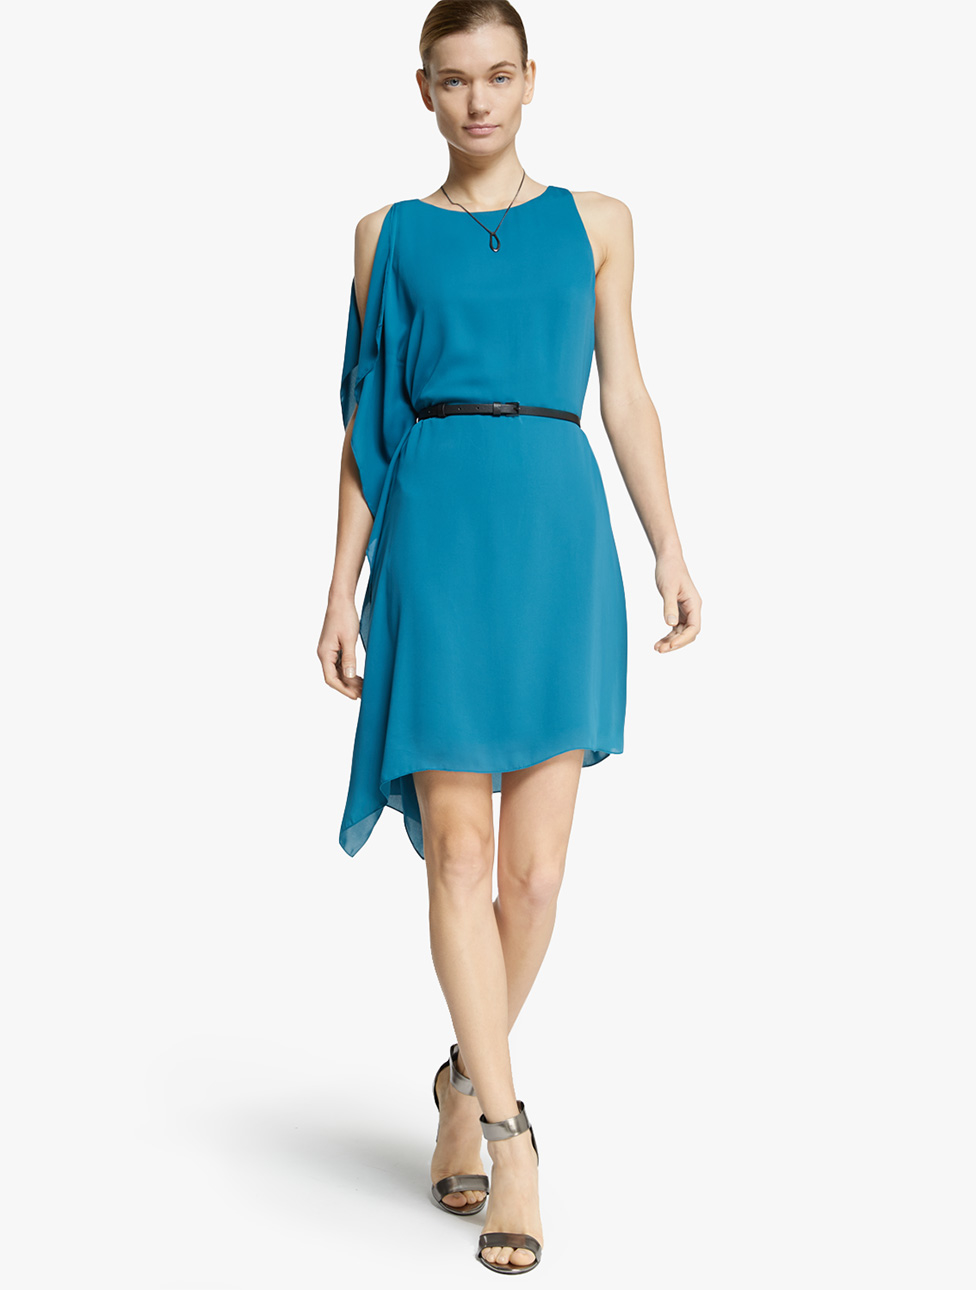 Lyst - Halston Flowy Georgette Dress in Blue